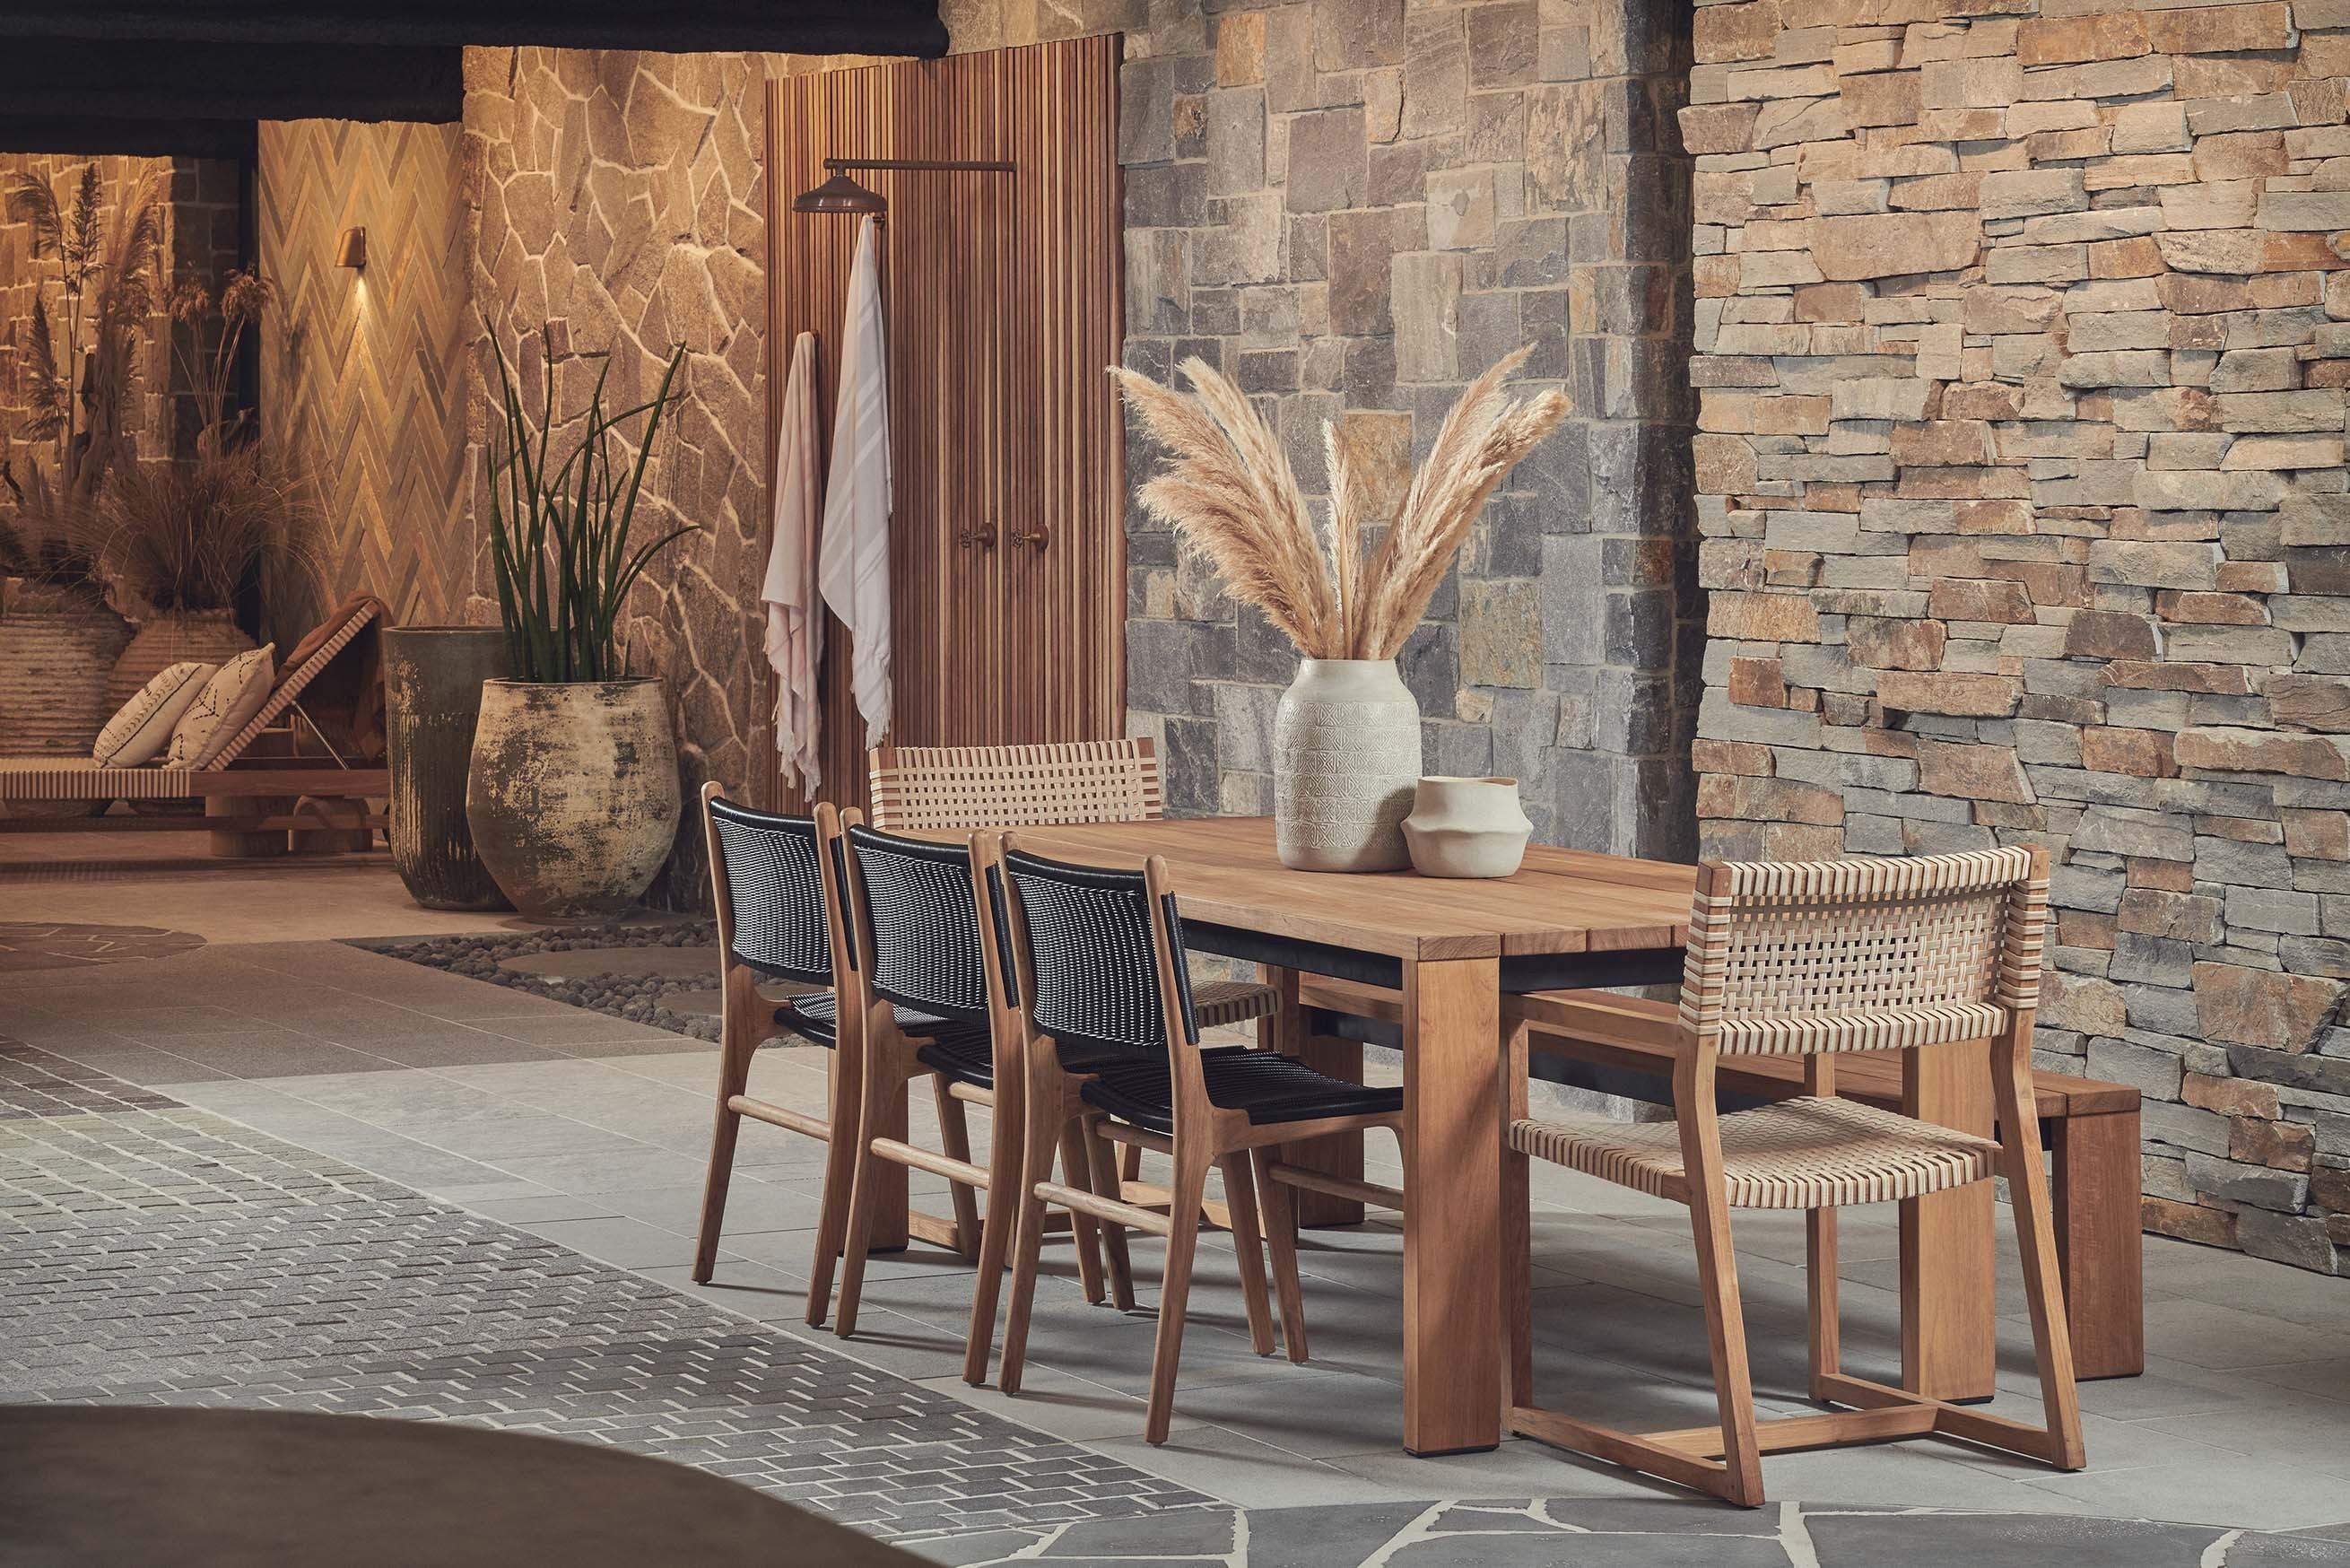 Furniture Gallery Dining-Chairs-Benches-Stools hamptons-bench-03